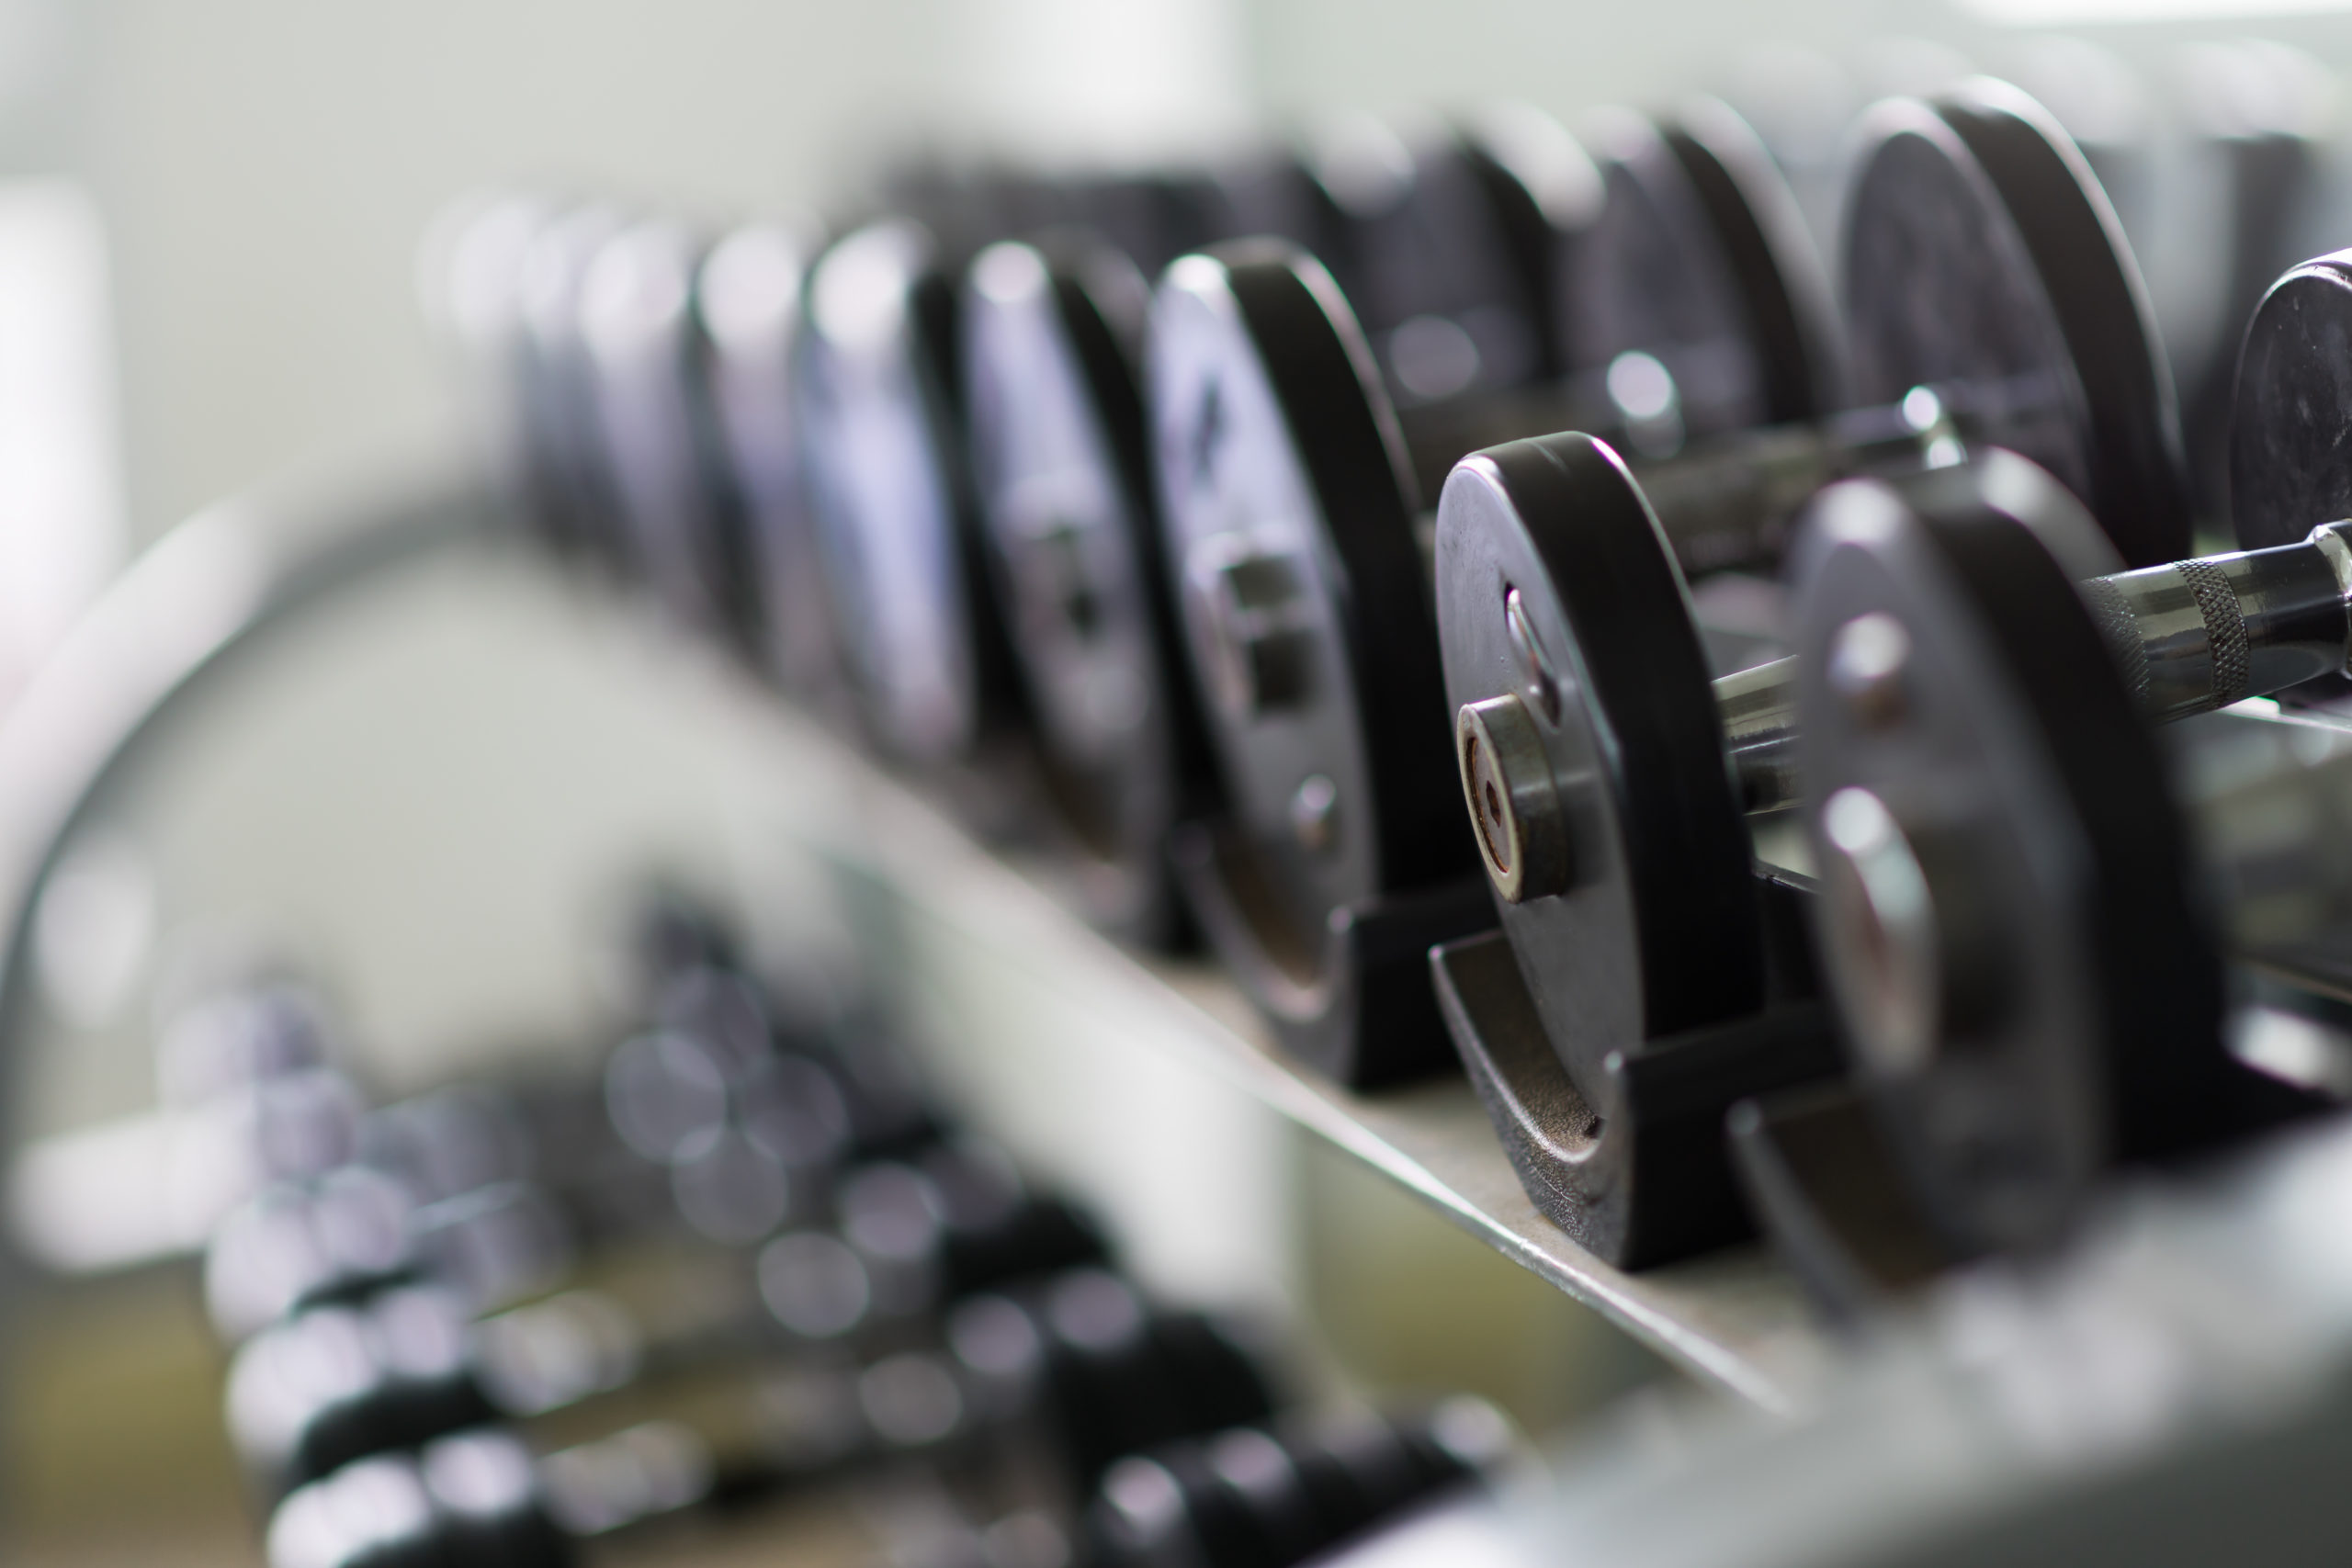 Rows of metal dumbbells on rack in the gym / sport club. Weight Training Equipment.